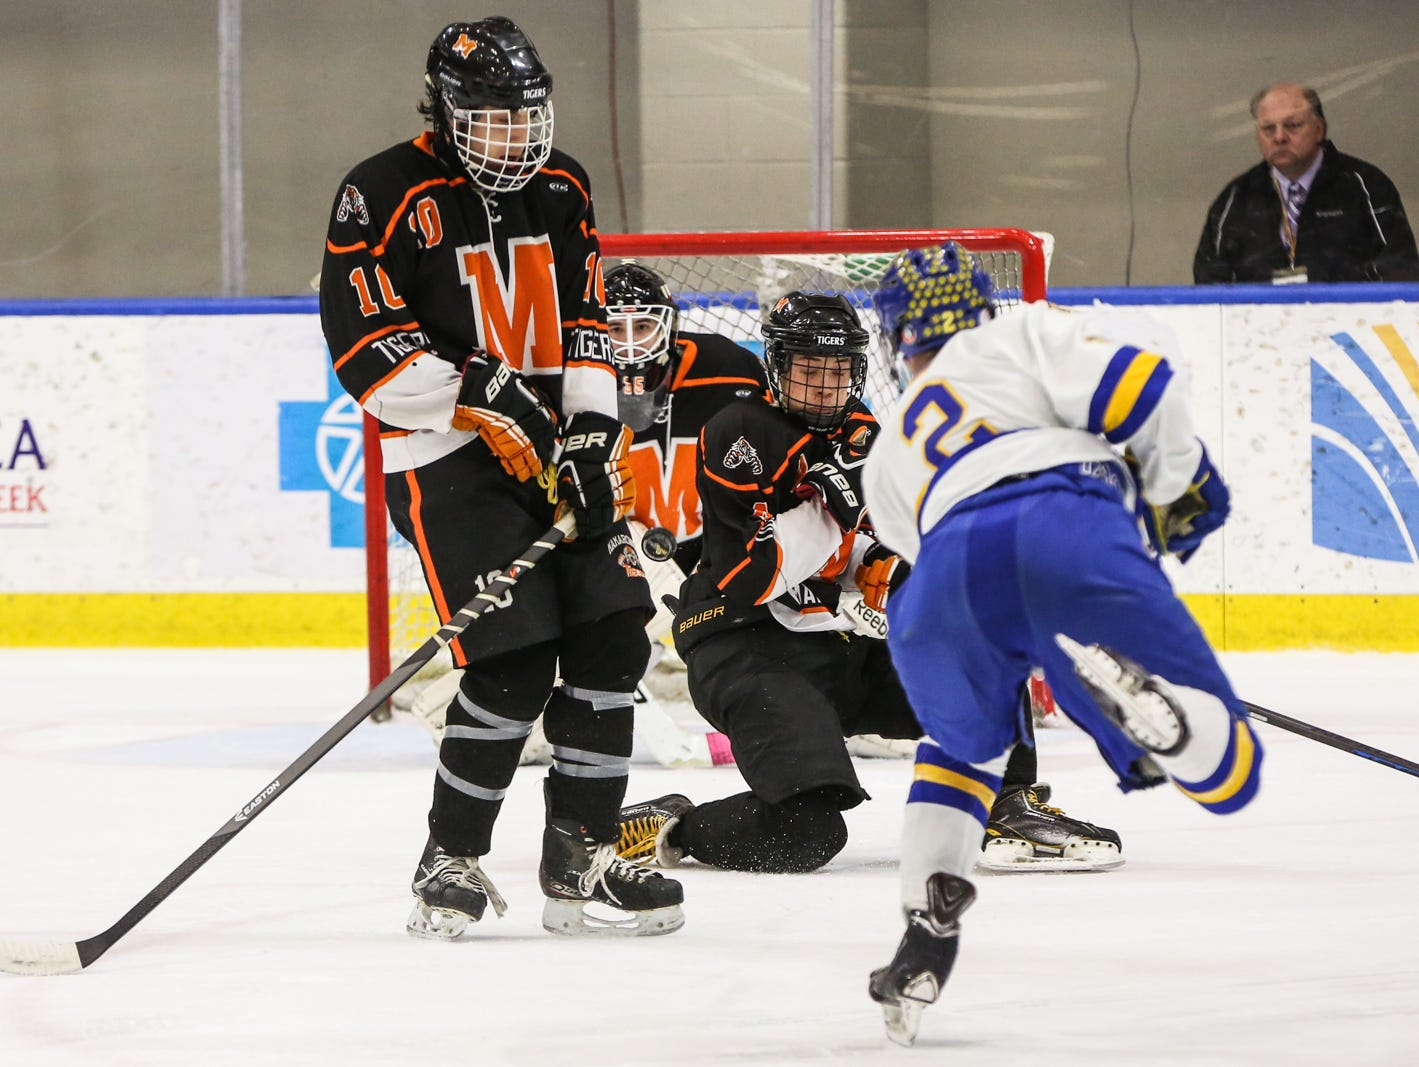 Mamaroneck's Ben Kahan (10) and Nick Campbell (4) tried to block West Genesee's Conor Bartlett shot as goalie Tommy Spero (35) keeps an eye on the puck in the second period. Mamaroneck defeated West Genesee 1-0 and won the NYSPHSAA Division 1 HarborCenter in Buffalo, NY.